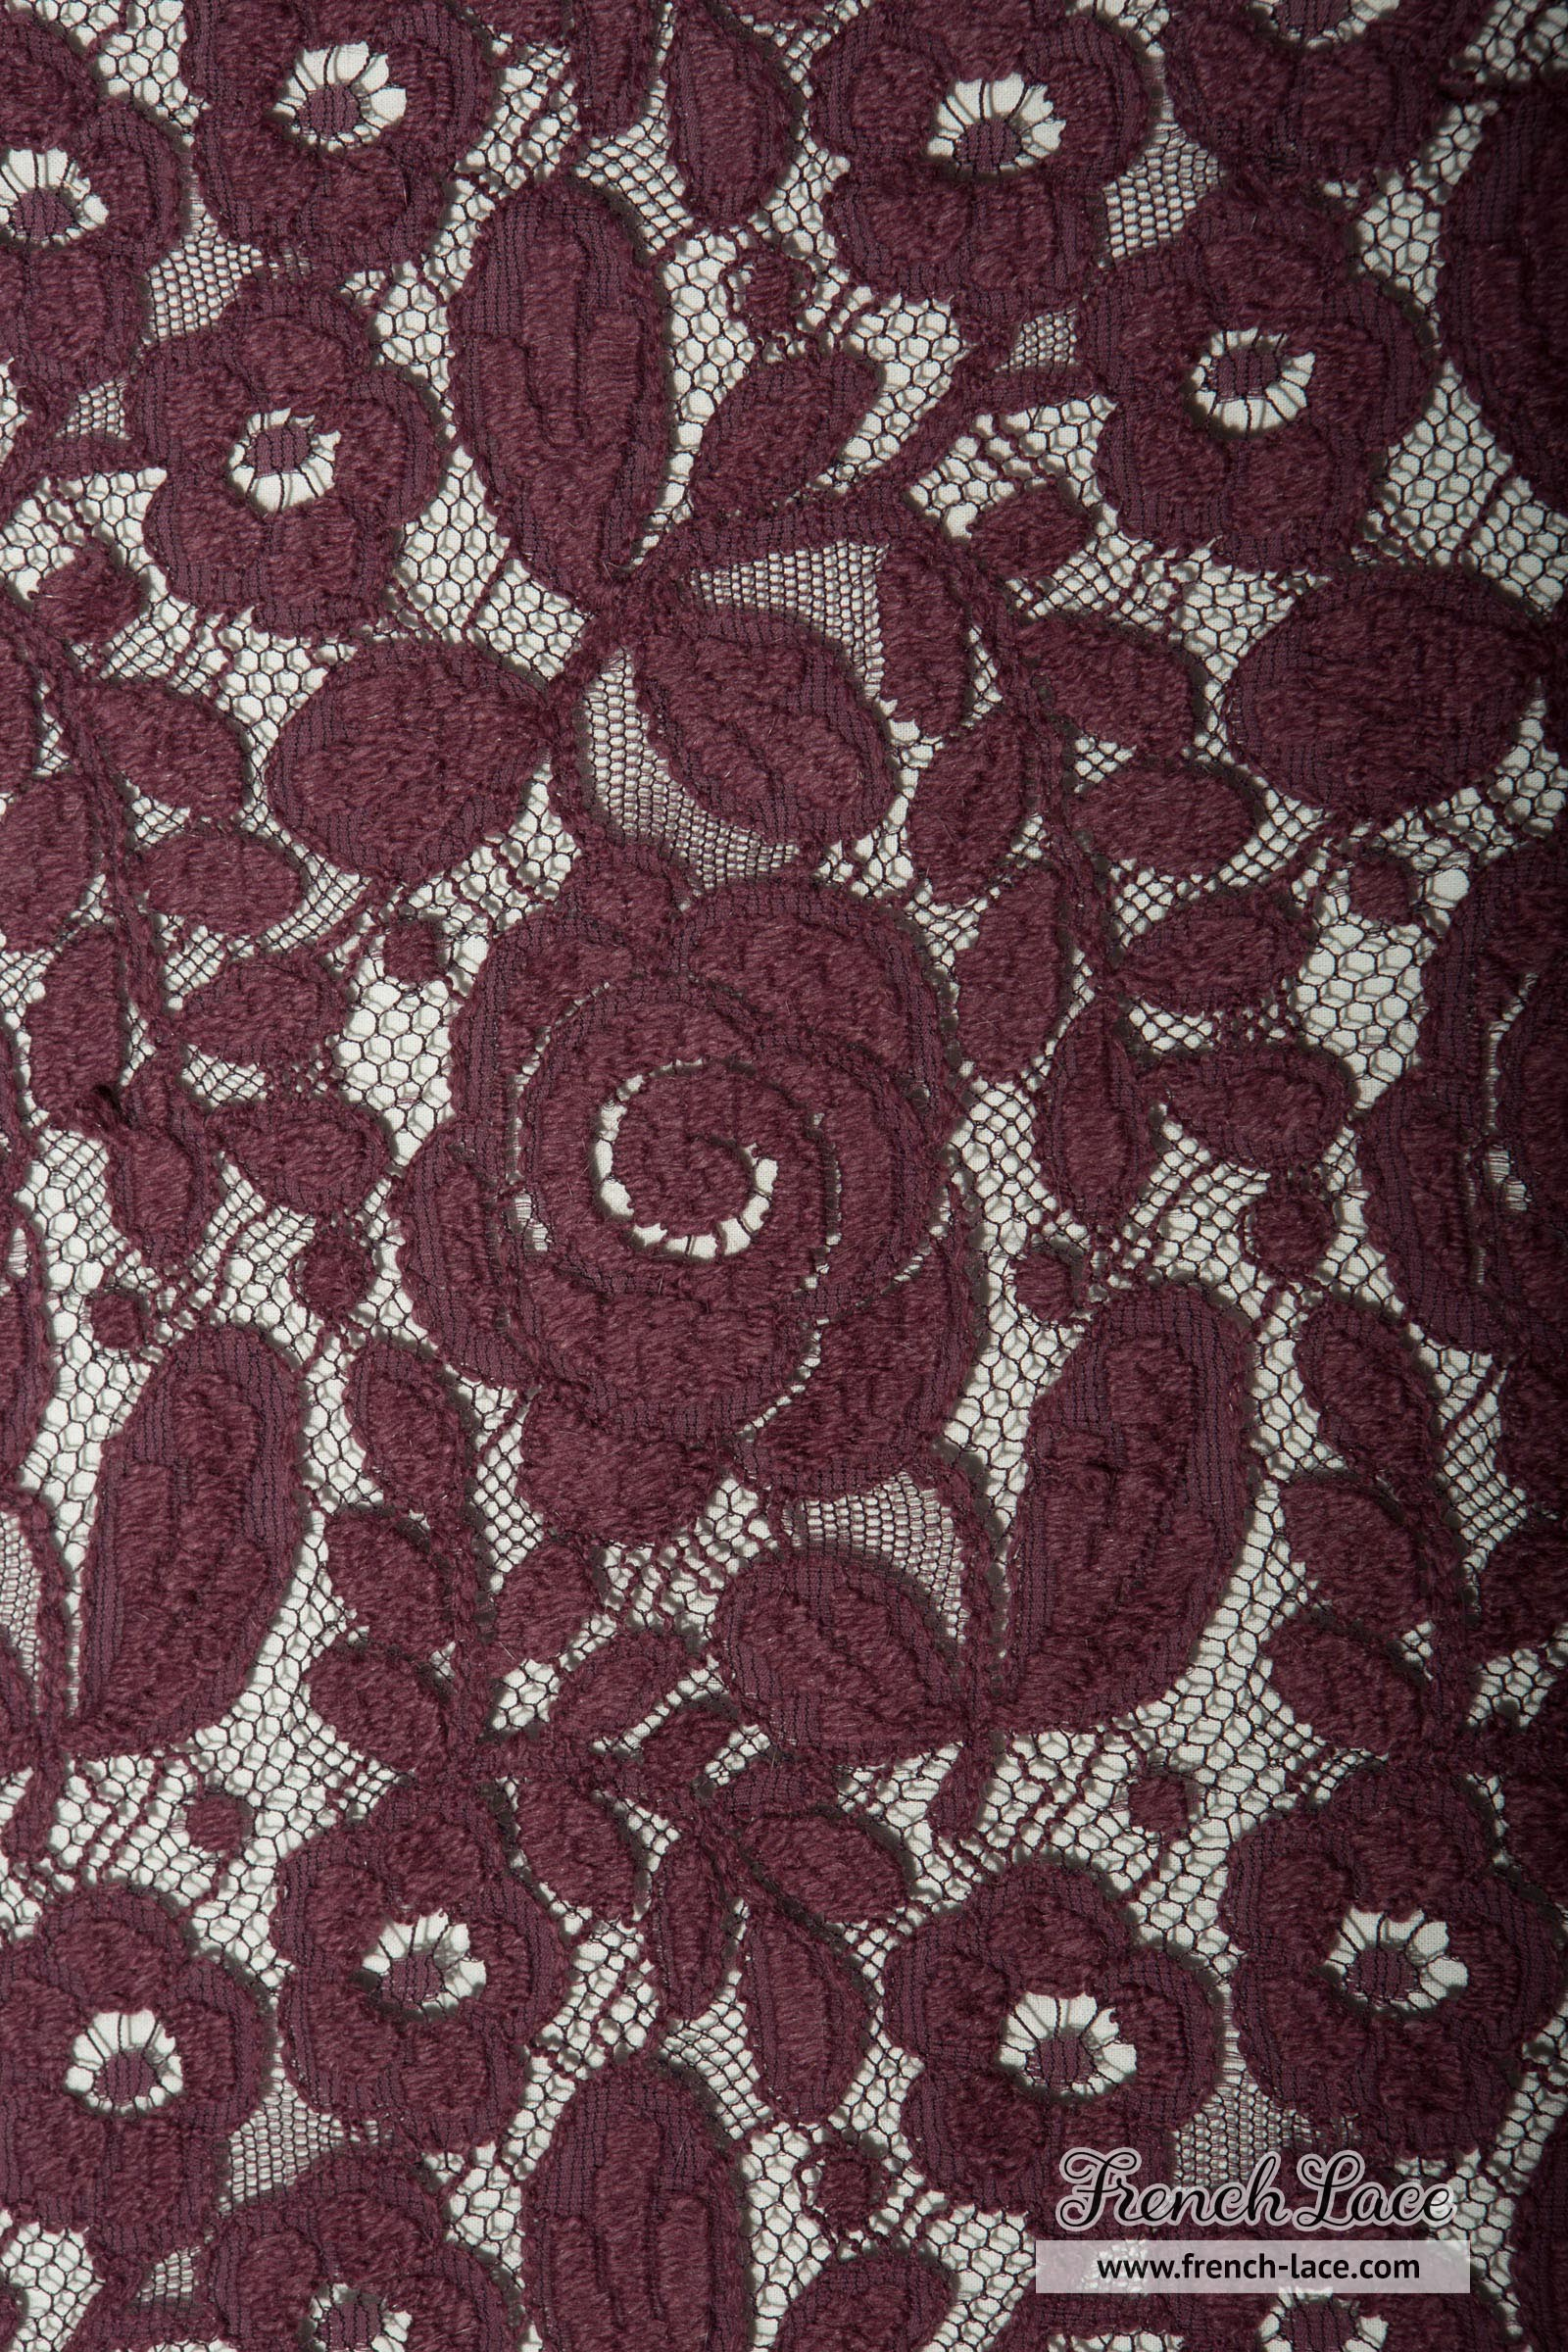 Inverno 90 Plum French Lace Online Shop